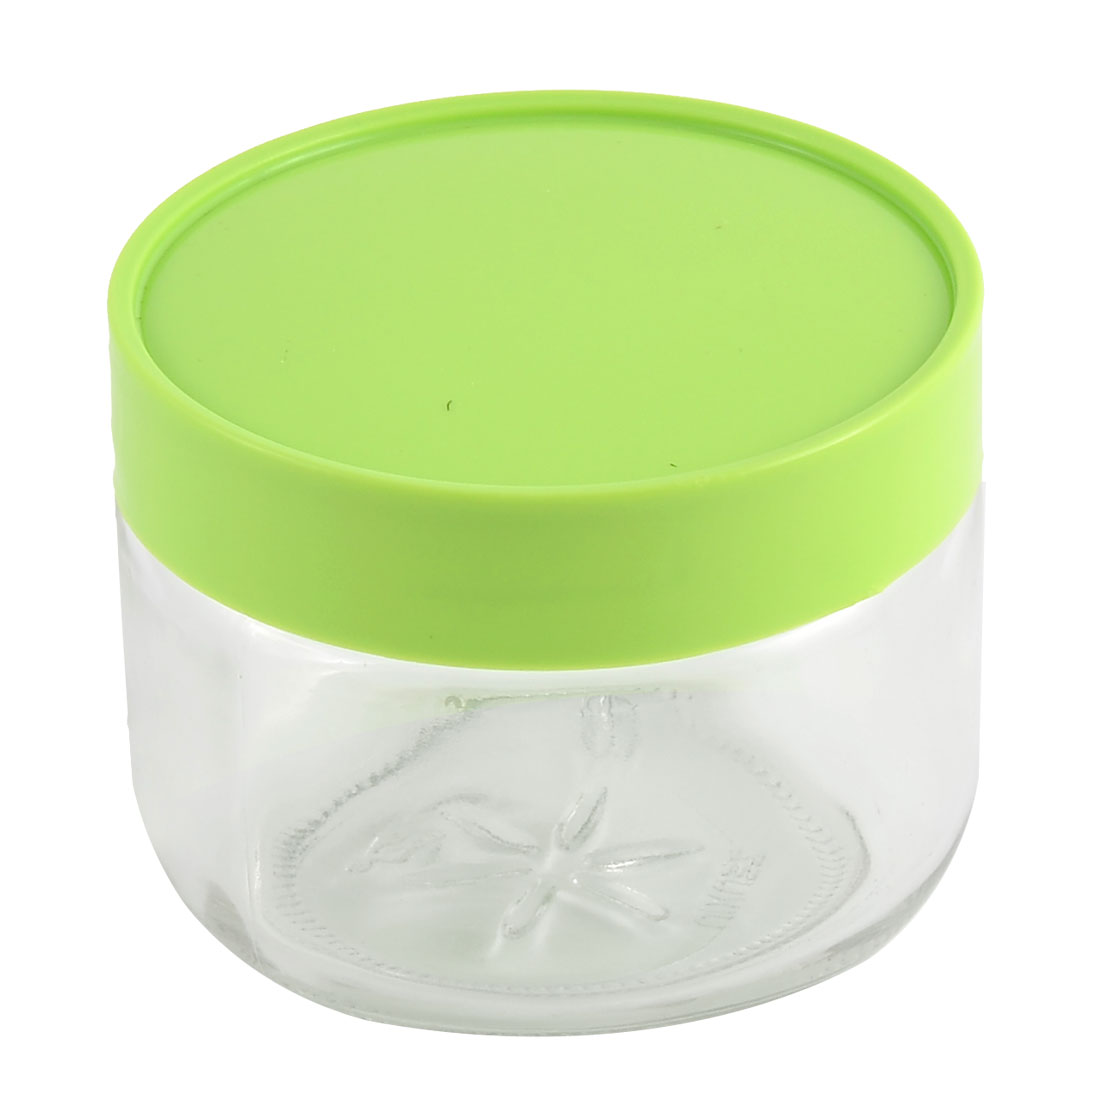 Household Glass Cylinder Tea Candy Coffee Food Storage Container Box Green 450ML